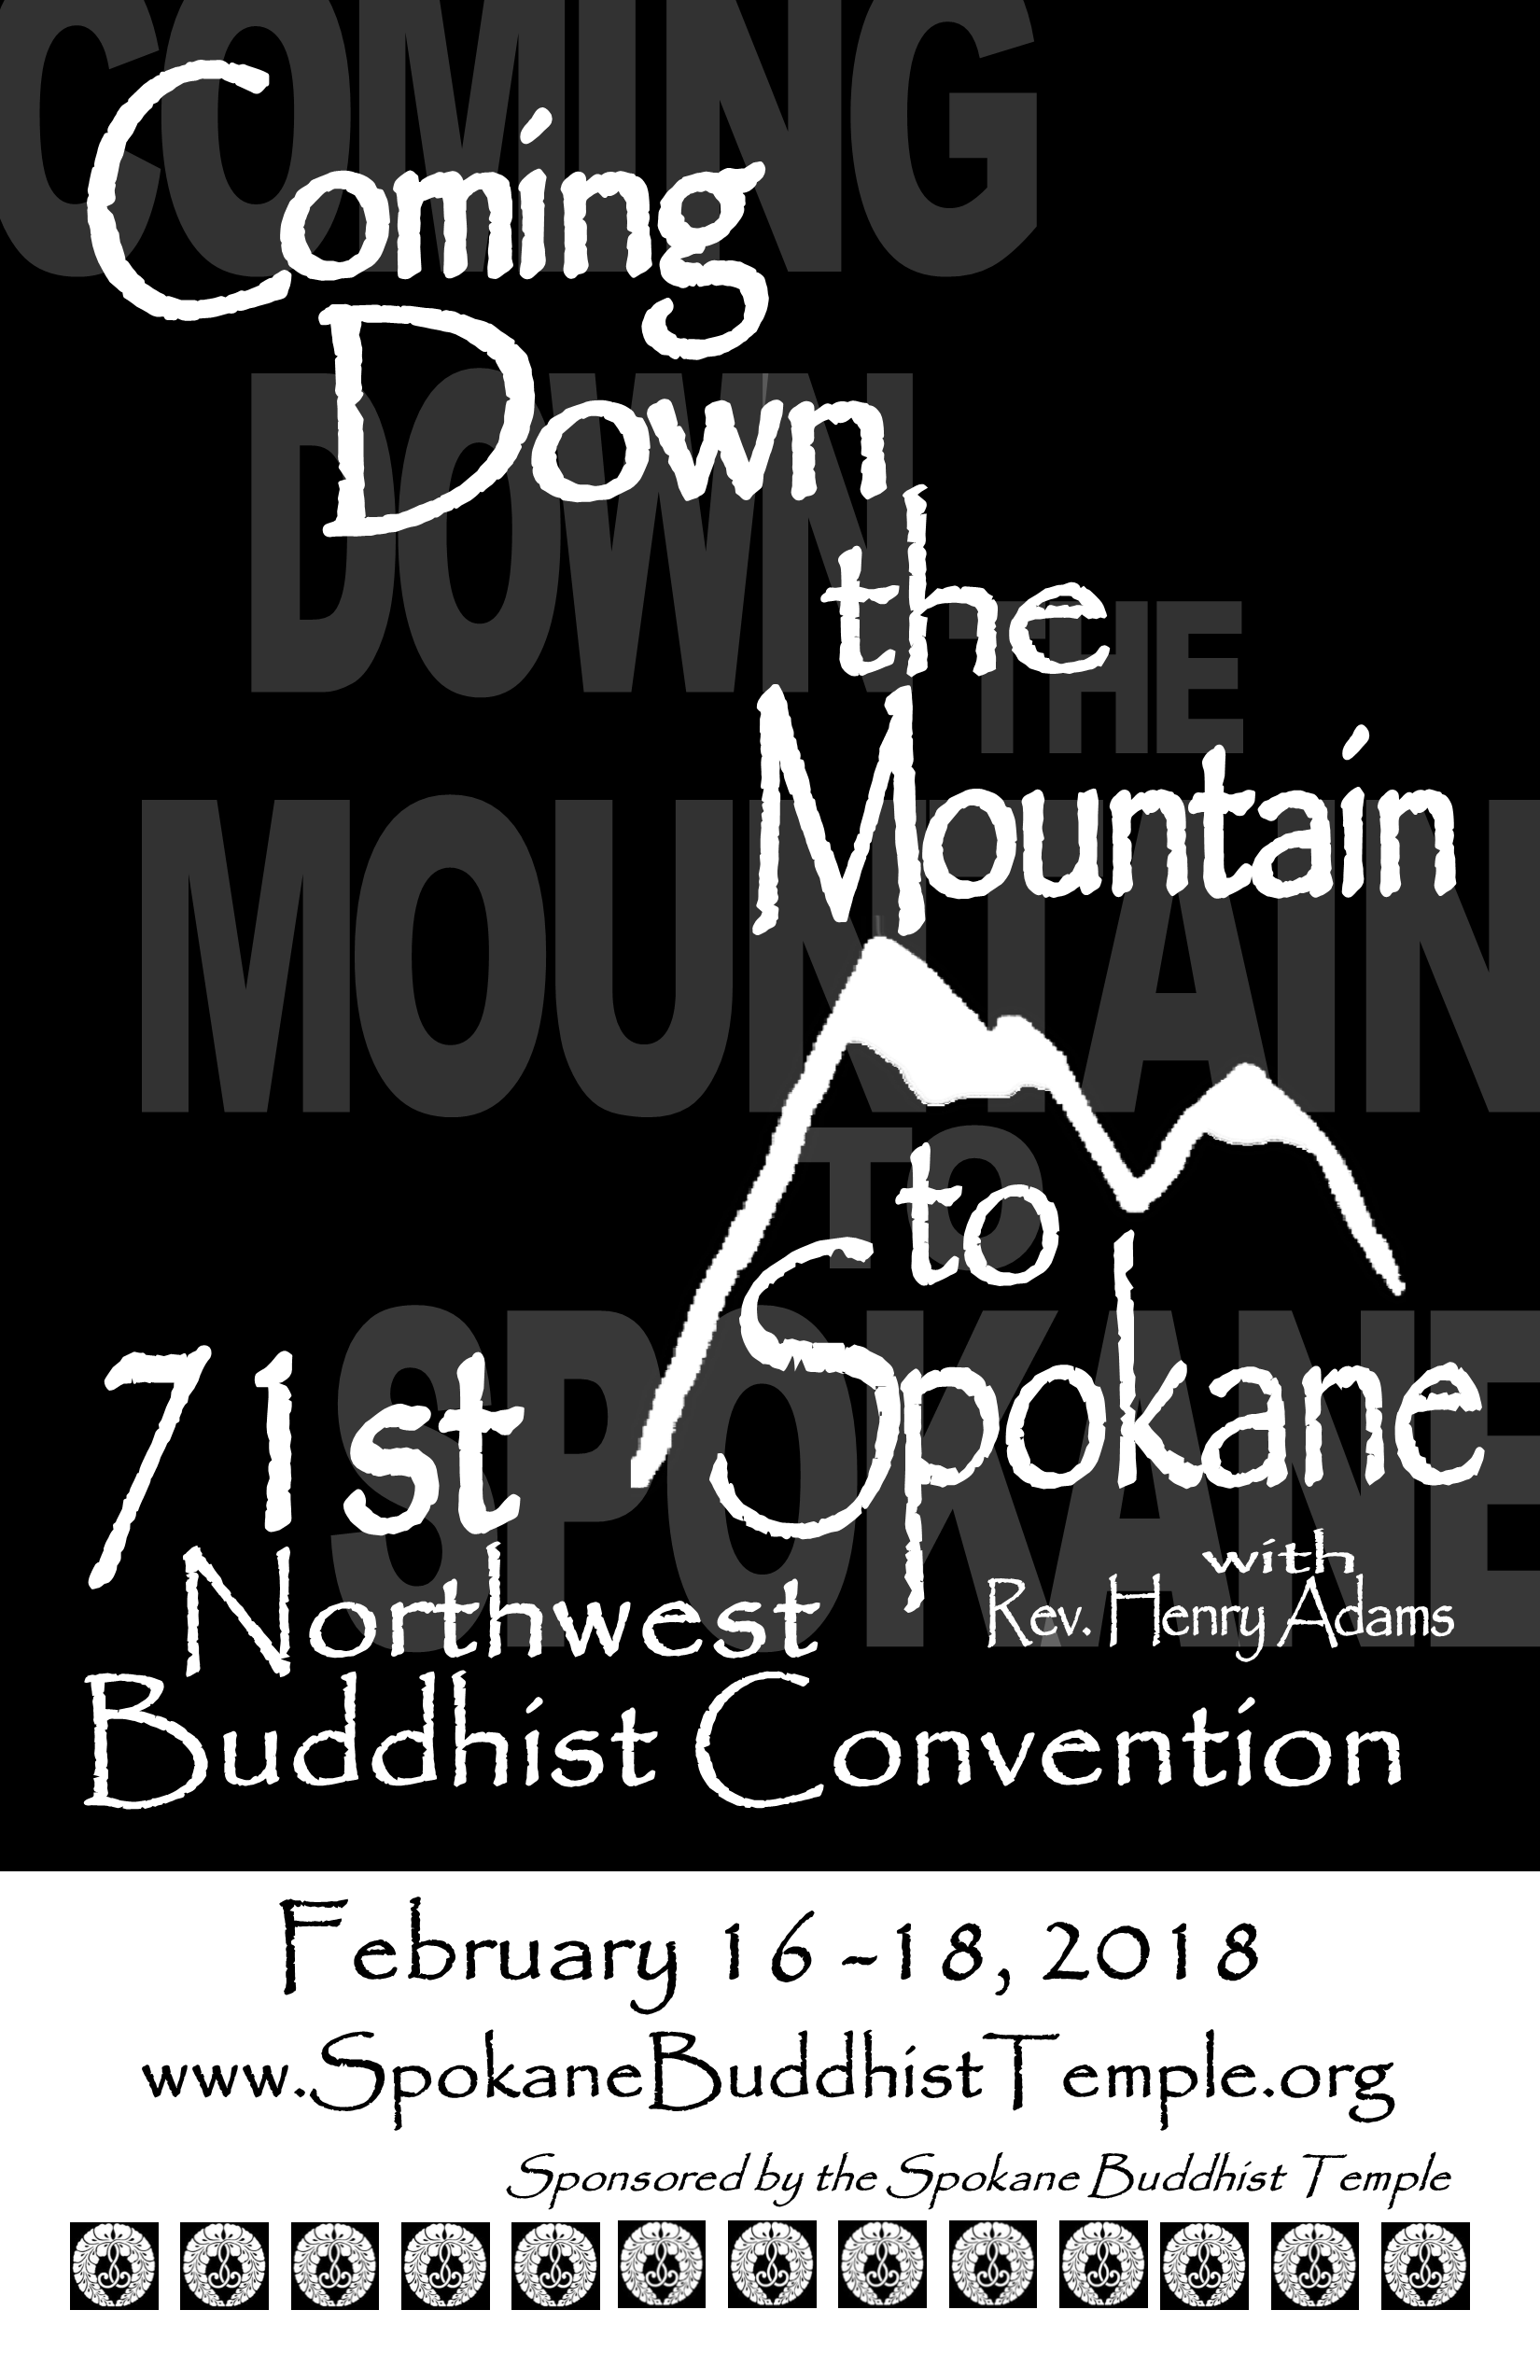 Coming Down the Mountain to Spokane - 71st Northwest Buddhist Convention